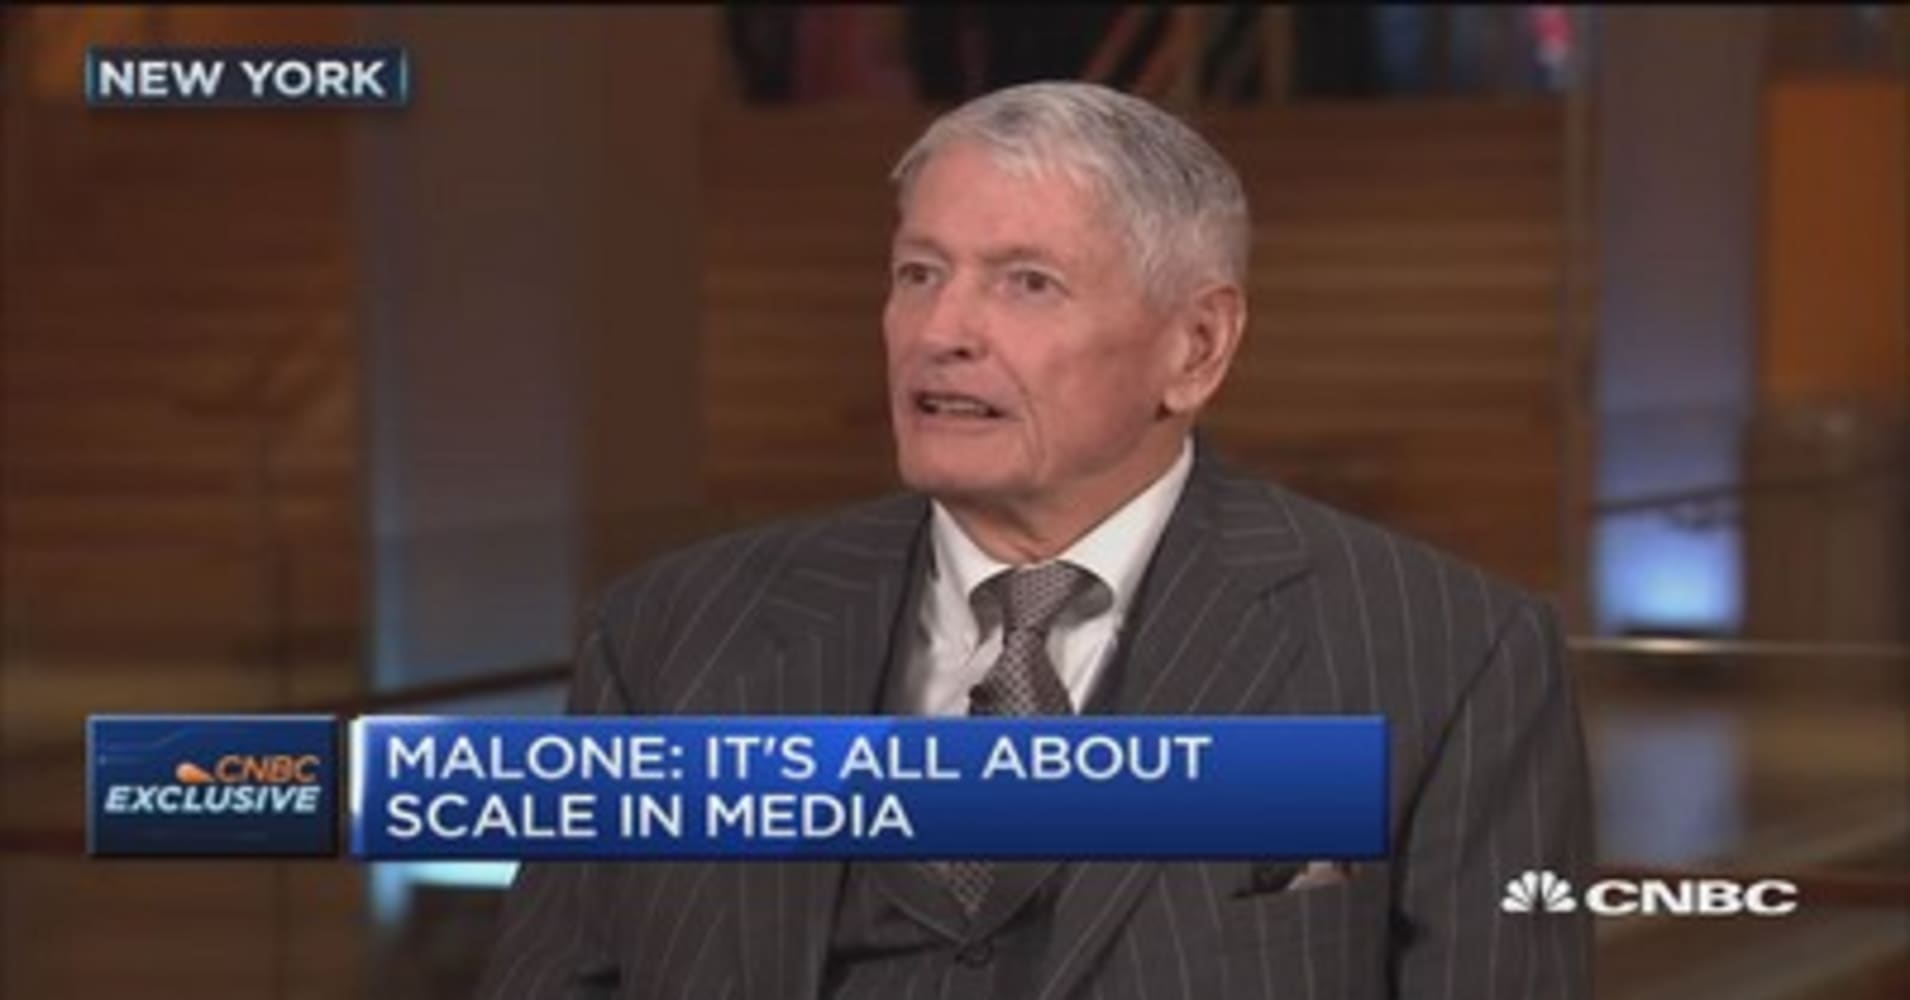 John Malone It s all about scale in media